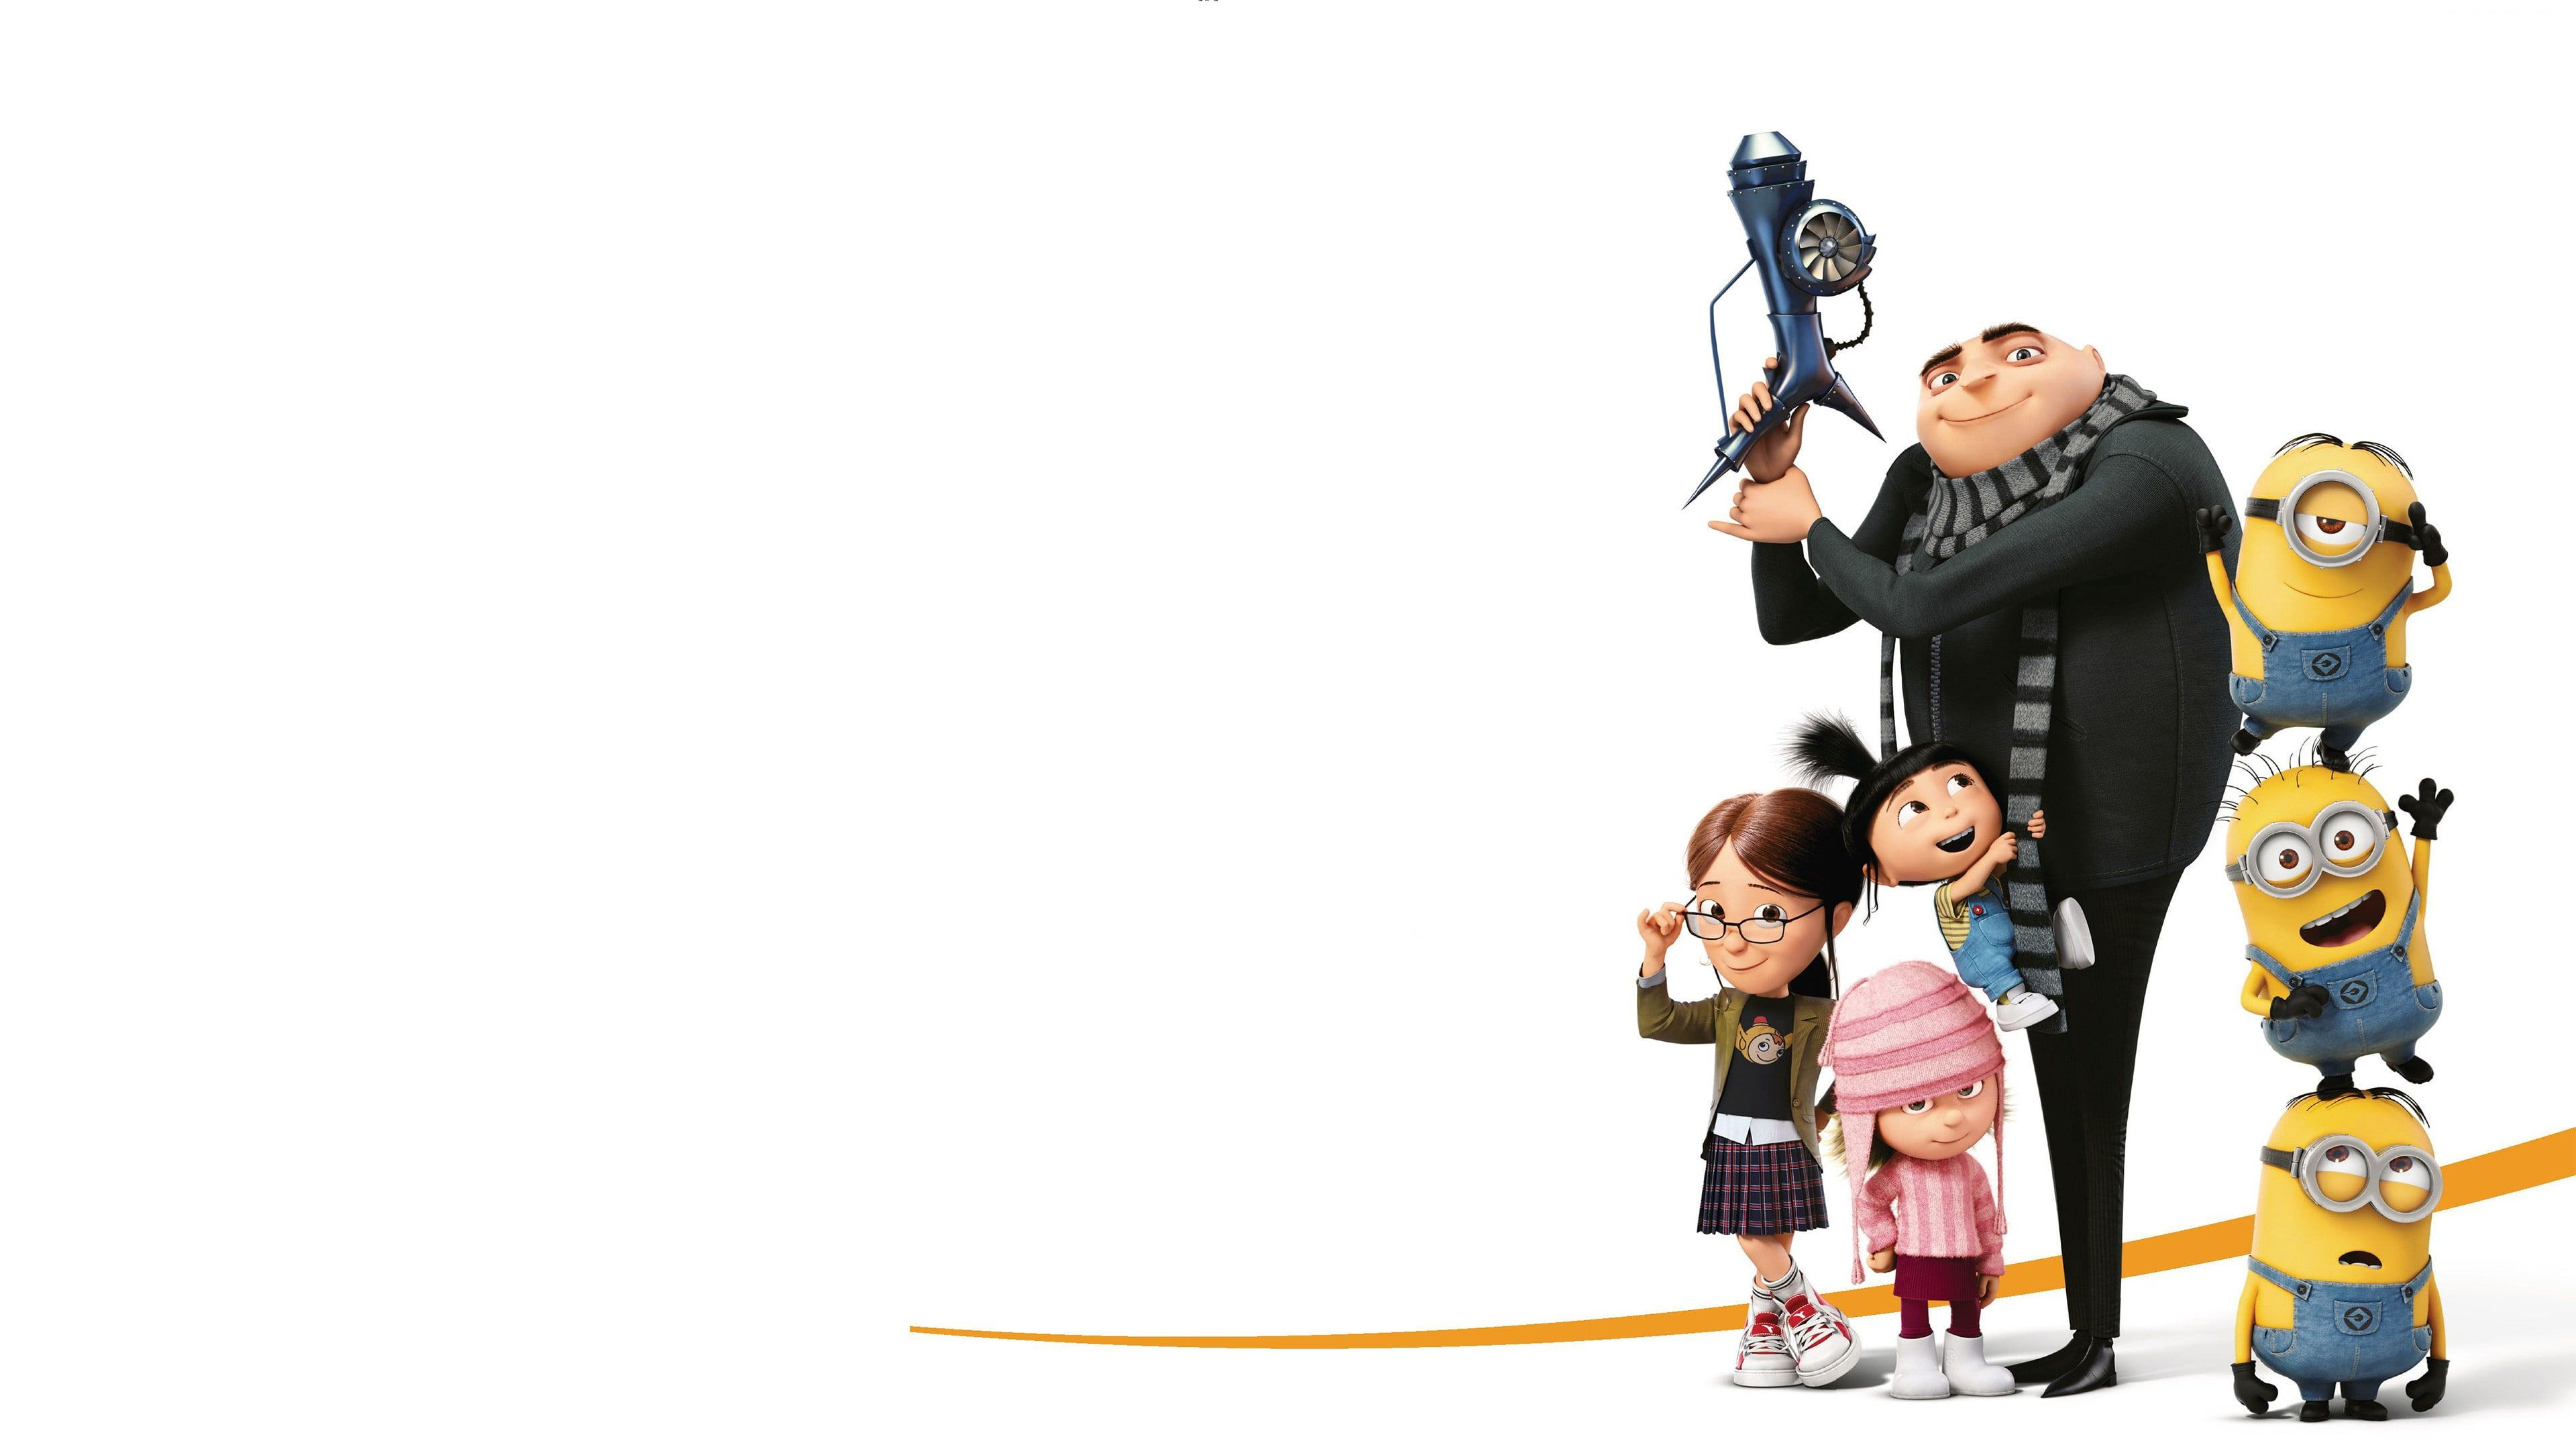 Dru 4k Poster Despicable Me 3 4k Wallpaper